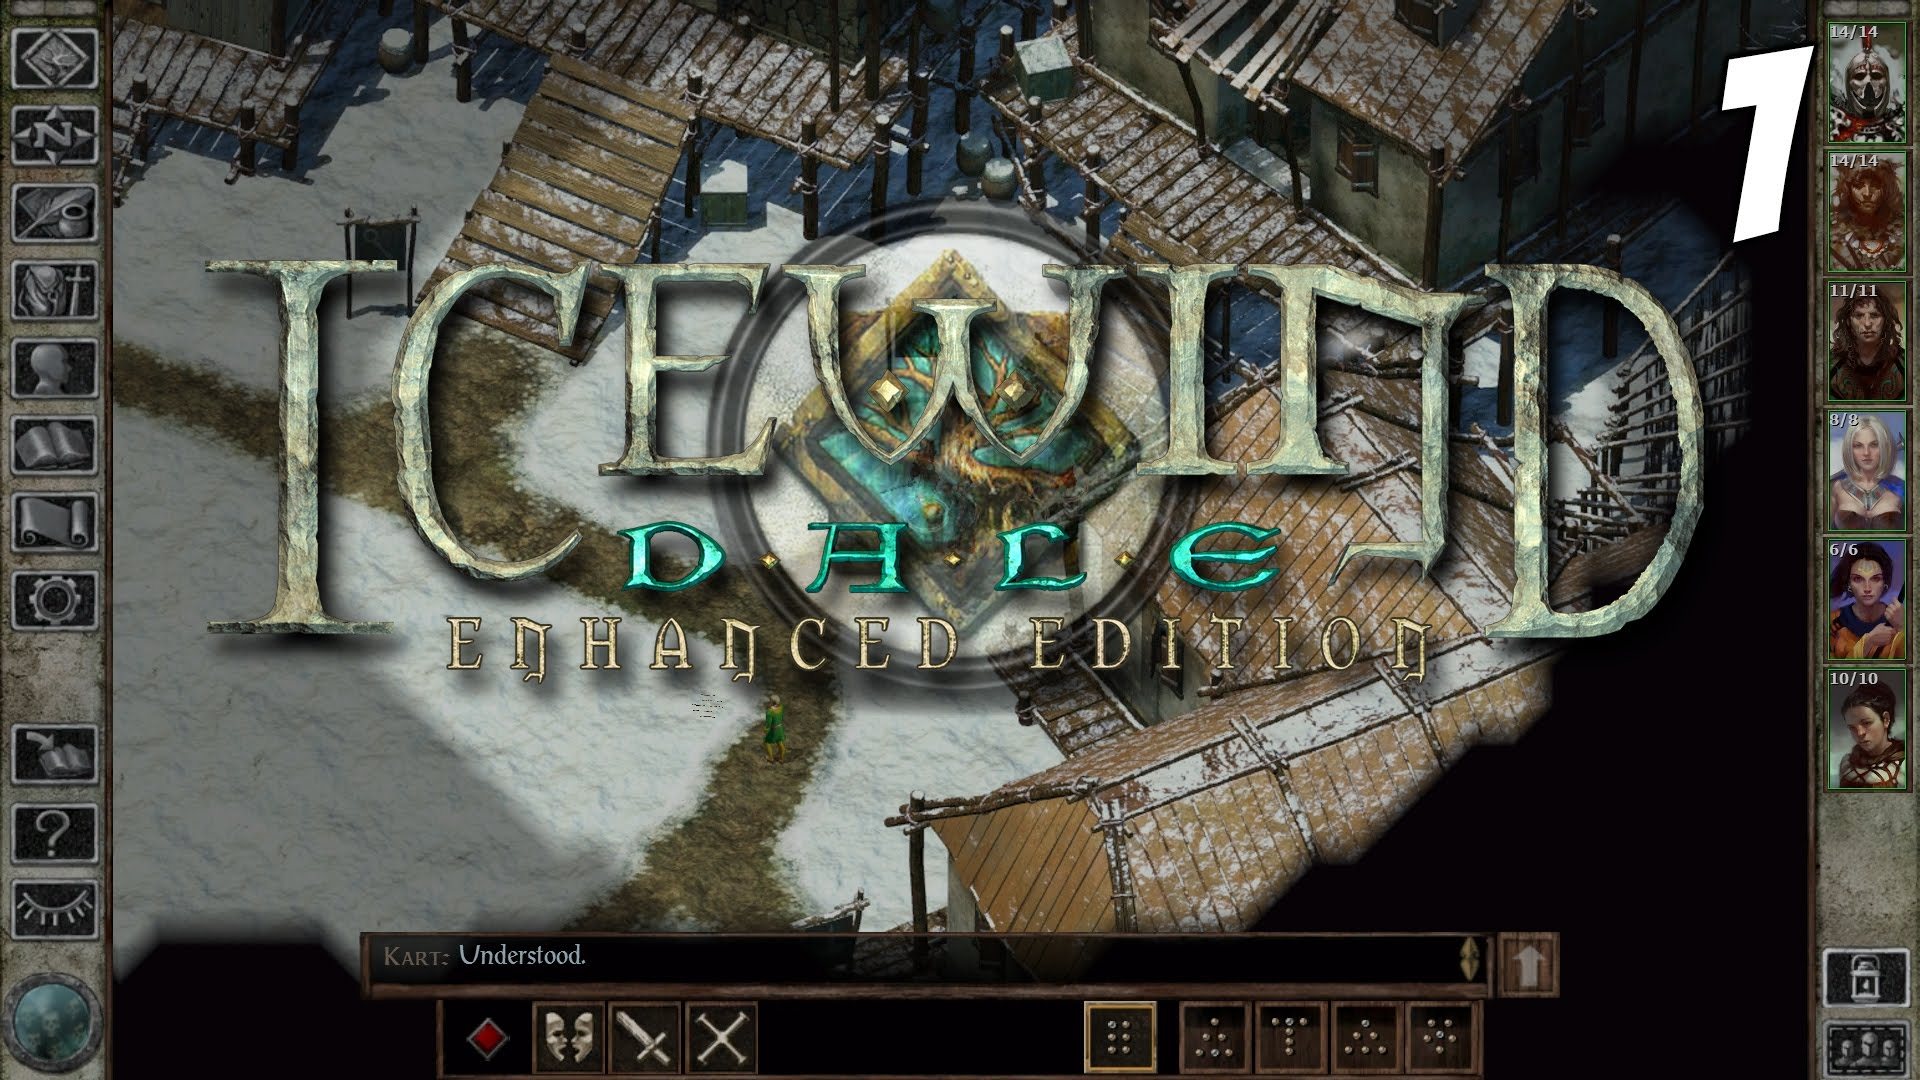 Icewind Dale Backgrounds, Compatible - PC, Mobile, Gadgets| 1920x1080 px